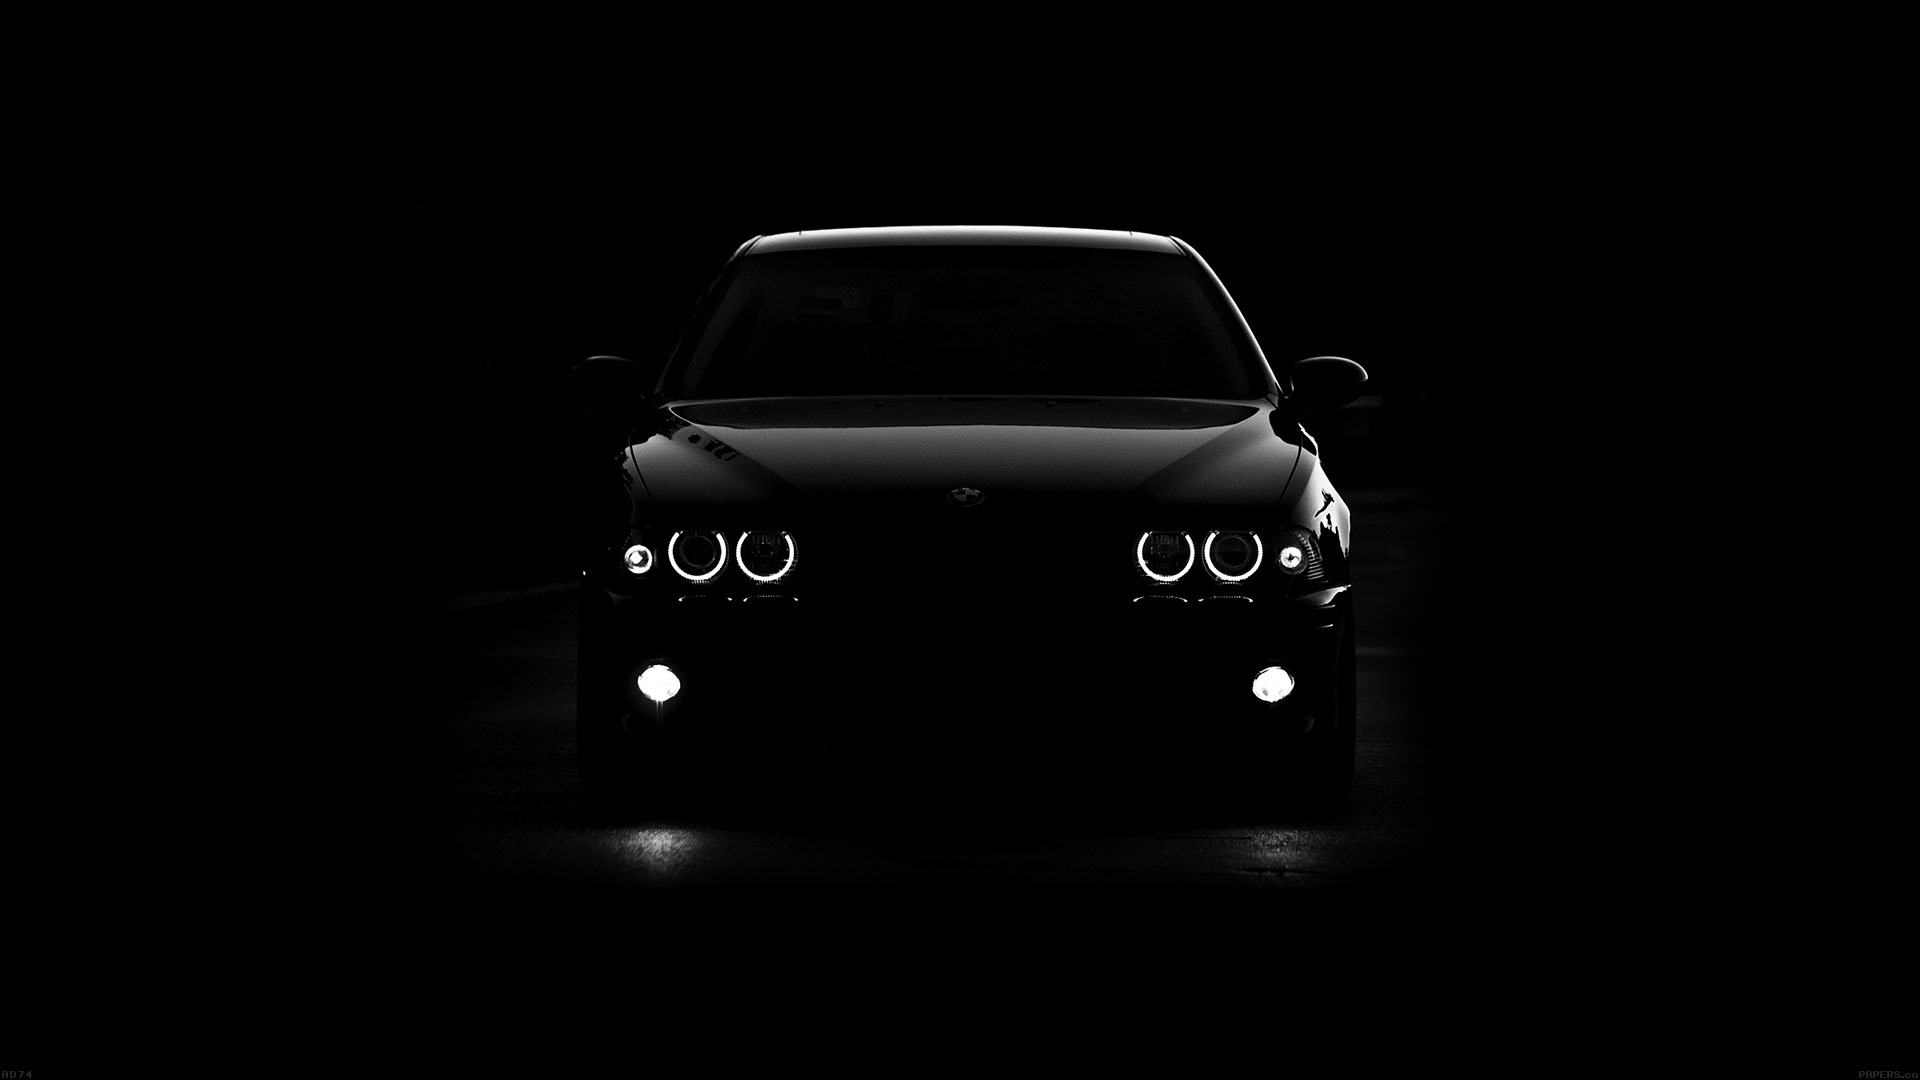 Ad74 bmw car black light - Car wallpaper black and white ...